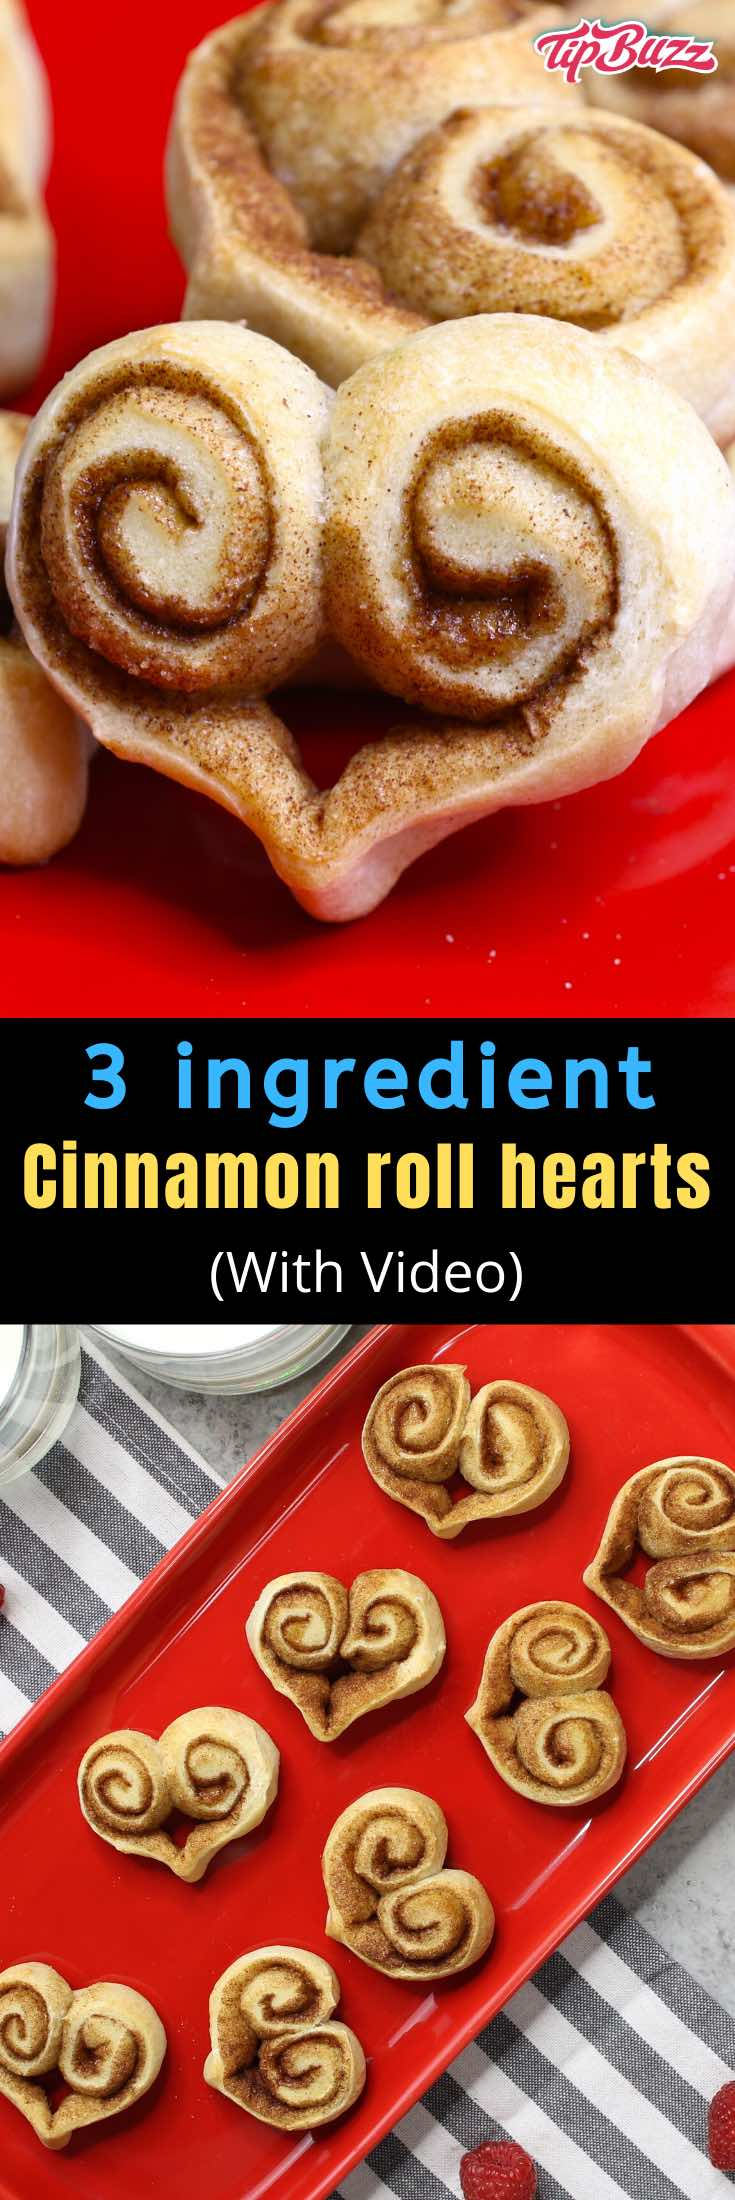 These Heart Shaped Cinnamon Rolls are homemade bite-size treats that are perfect for any special occasion. You can make these heart cinnamon rolls with just 3 ingredients. They're always a hit! #CinnamonRolls #3IngredientRecipe